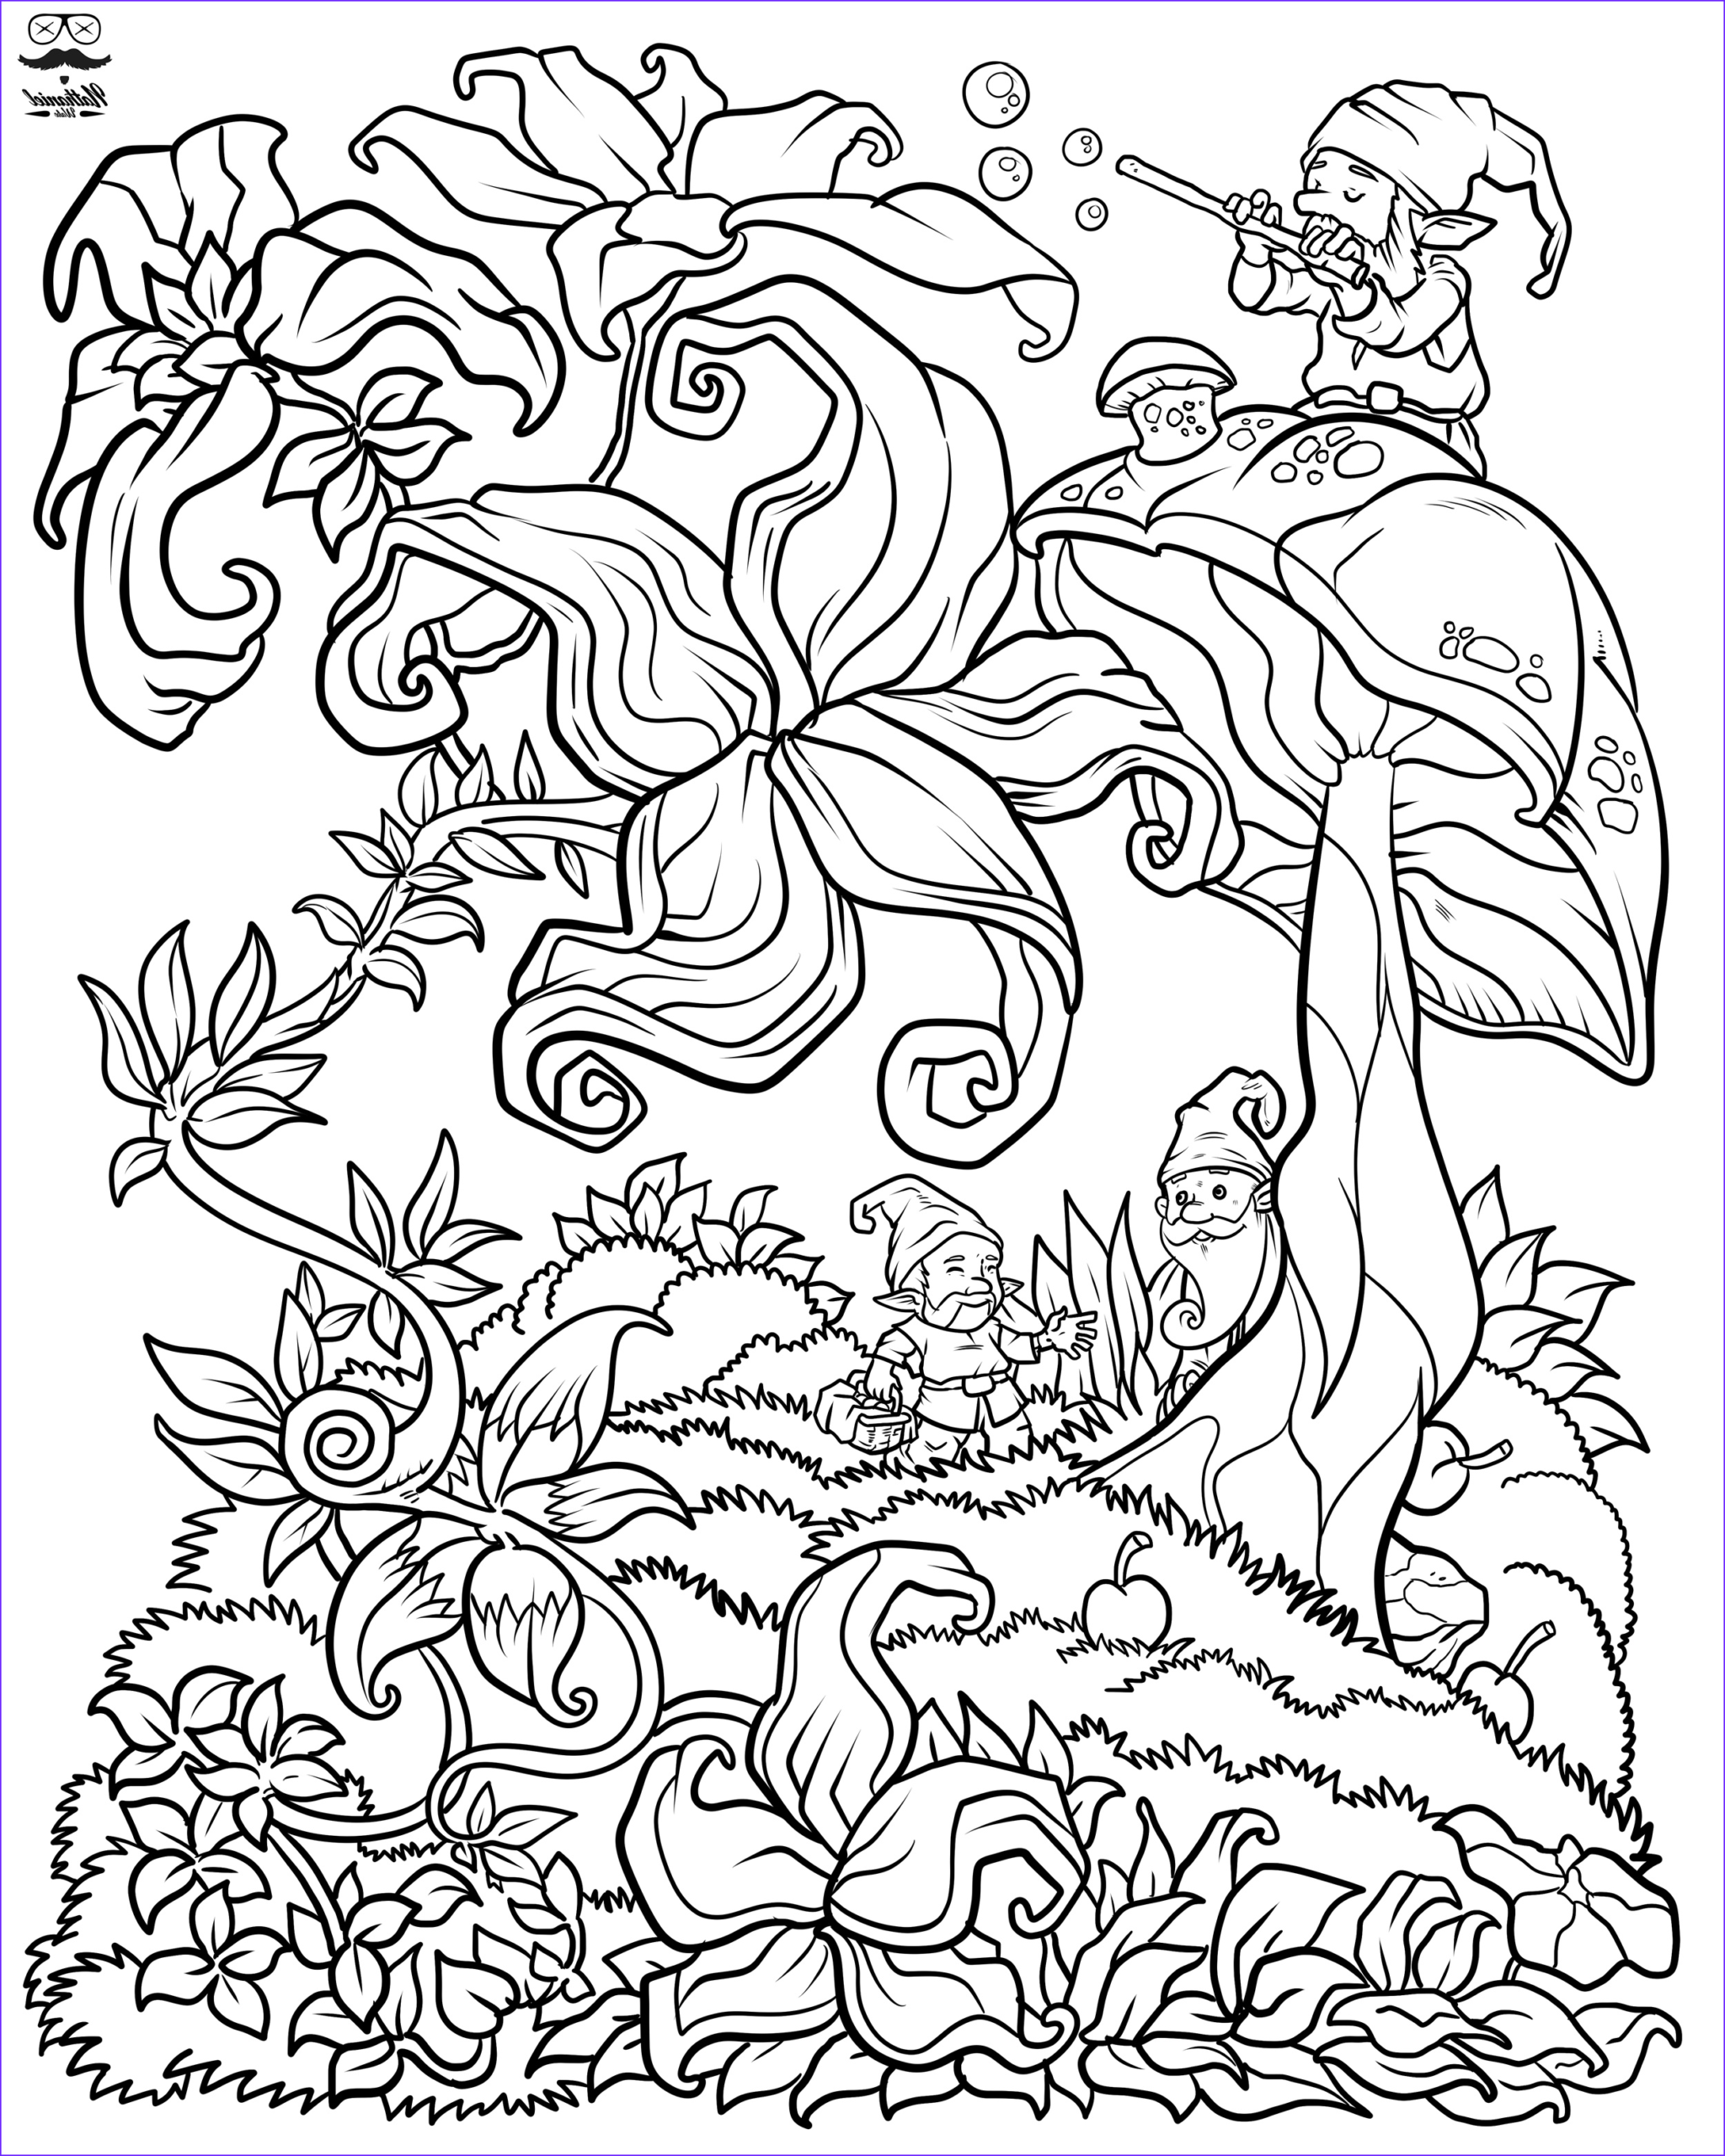 Coloring Pages for Men Luxury Image Floral Fantasy Digital Version Adult Coloring Book